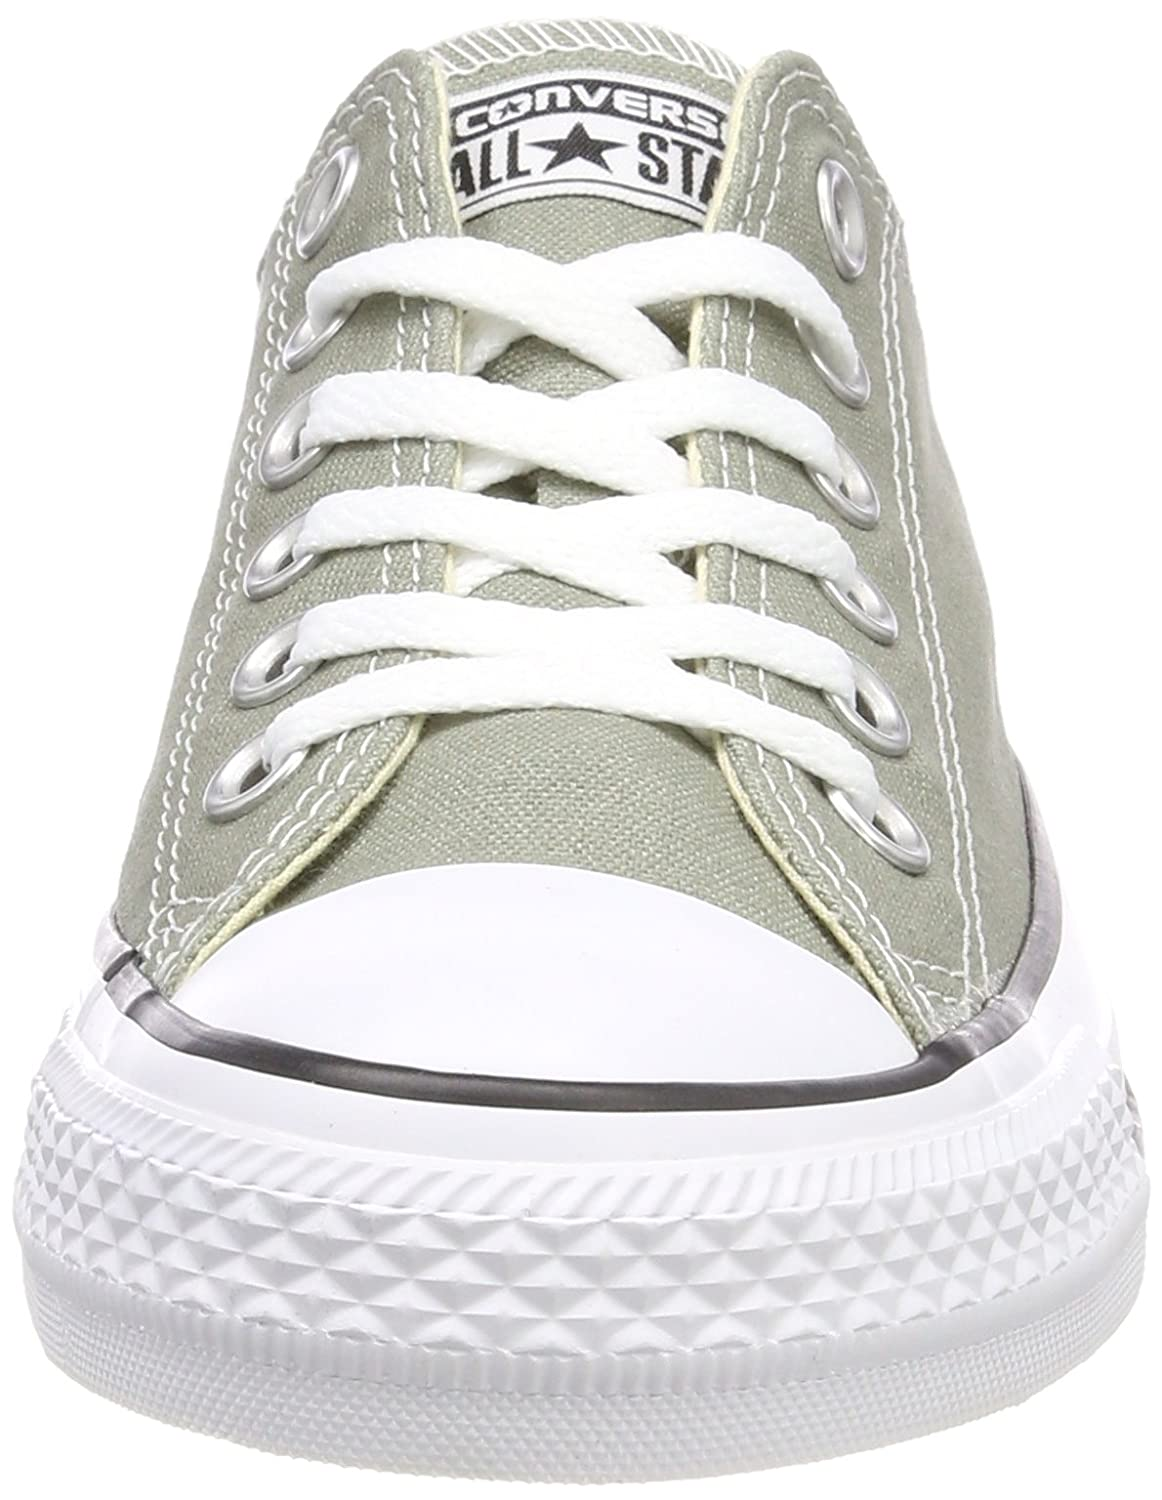 e260124349d9 Amazon.com  Converse Chuck Taylor All Star Ox Sneakers  Shoes